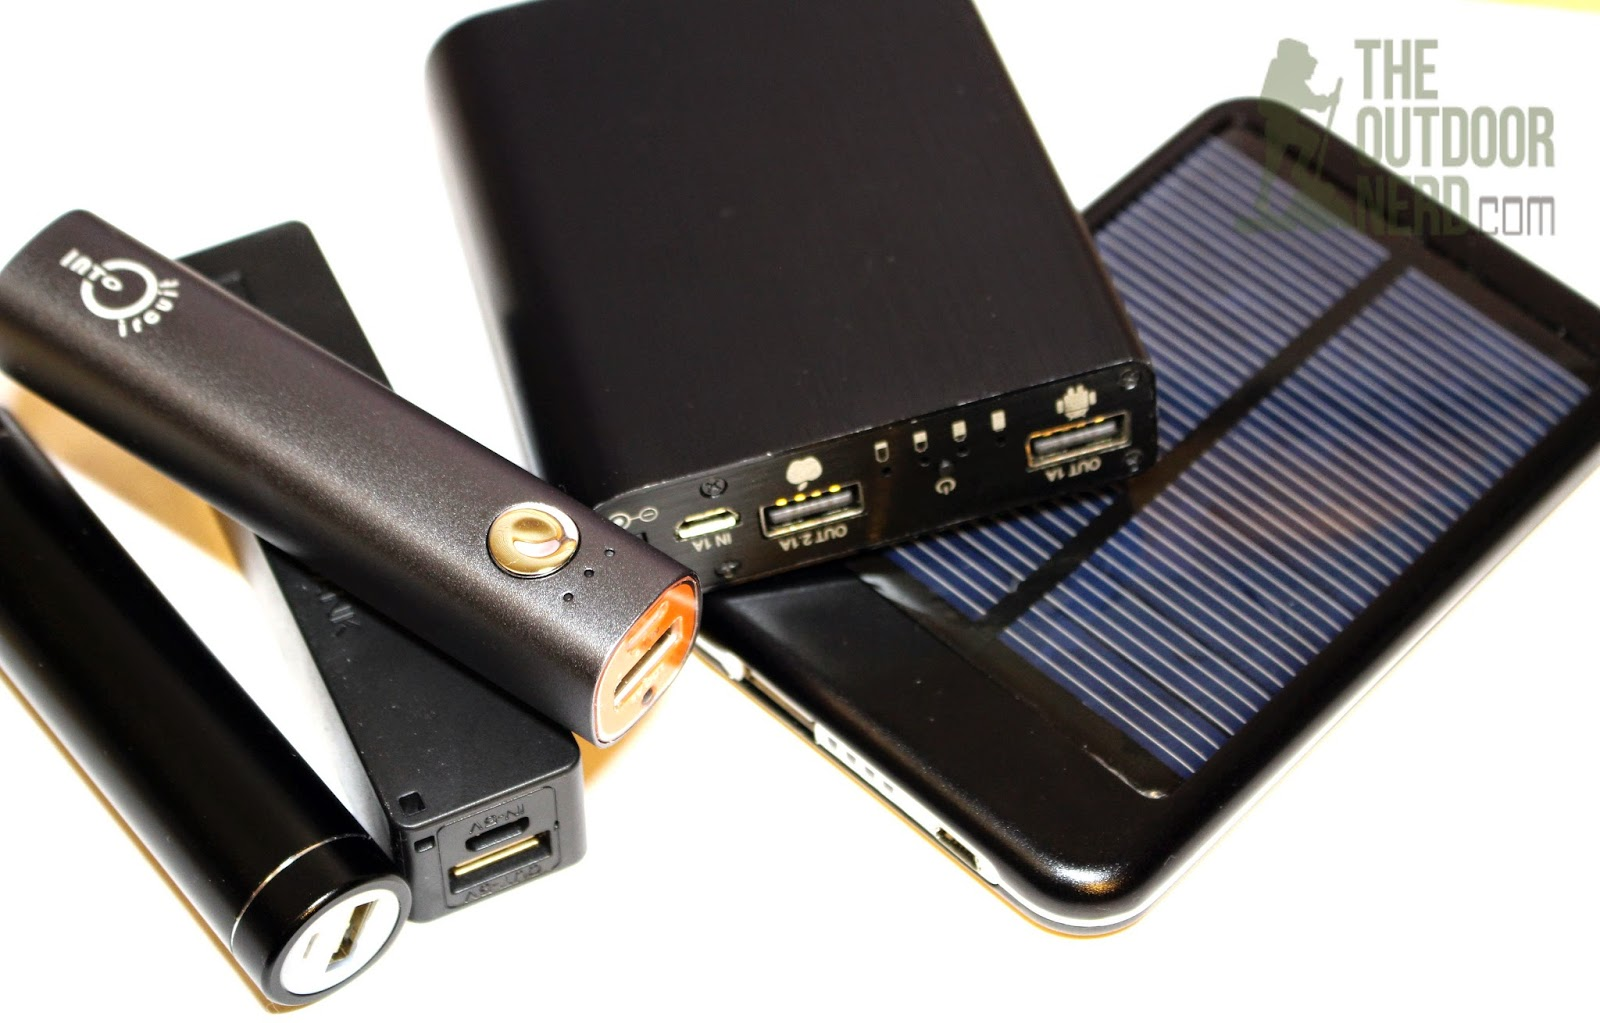 Intocircuit 3000 mAh USB Power Bank: With Other USB Power Banks